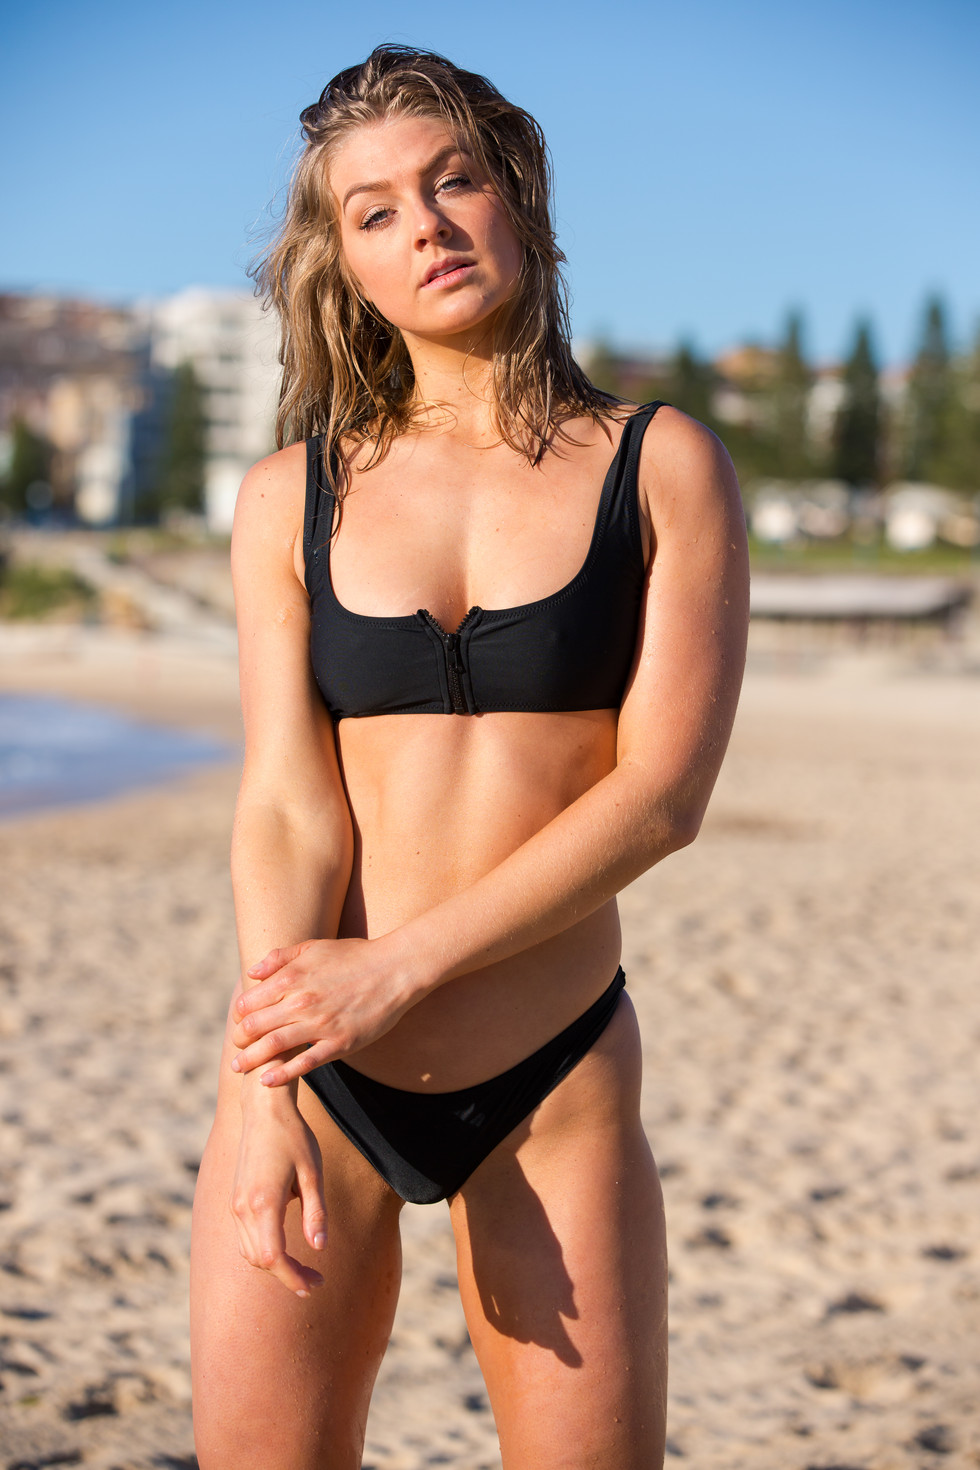 Felicia_by_CoogeePhotography-131258.jpg